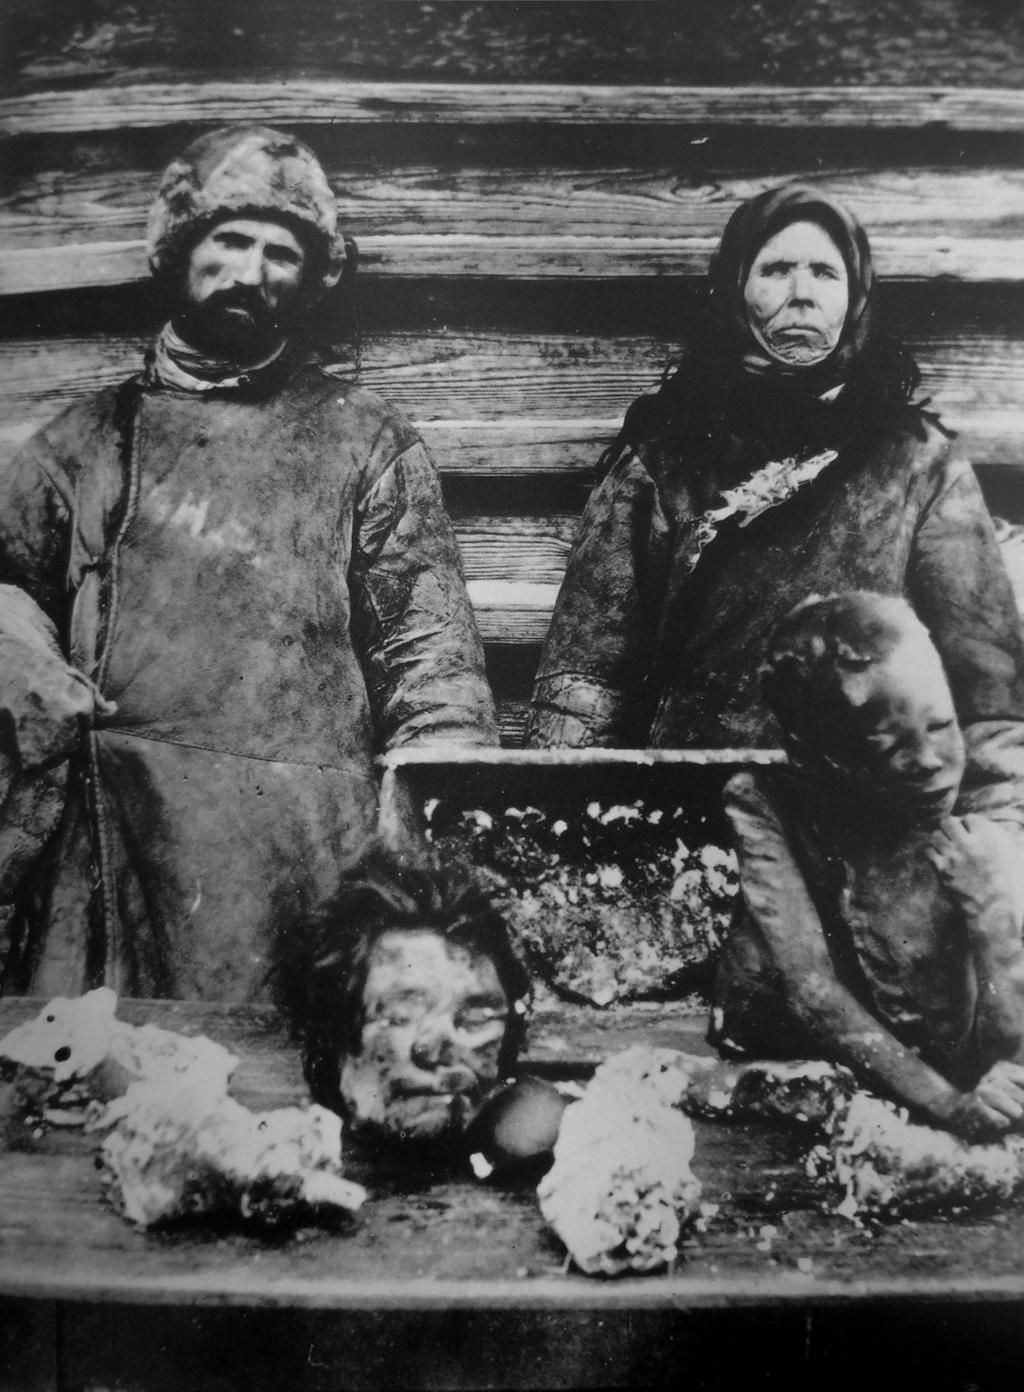 Cannibalism during Russian famine of 1921.